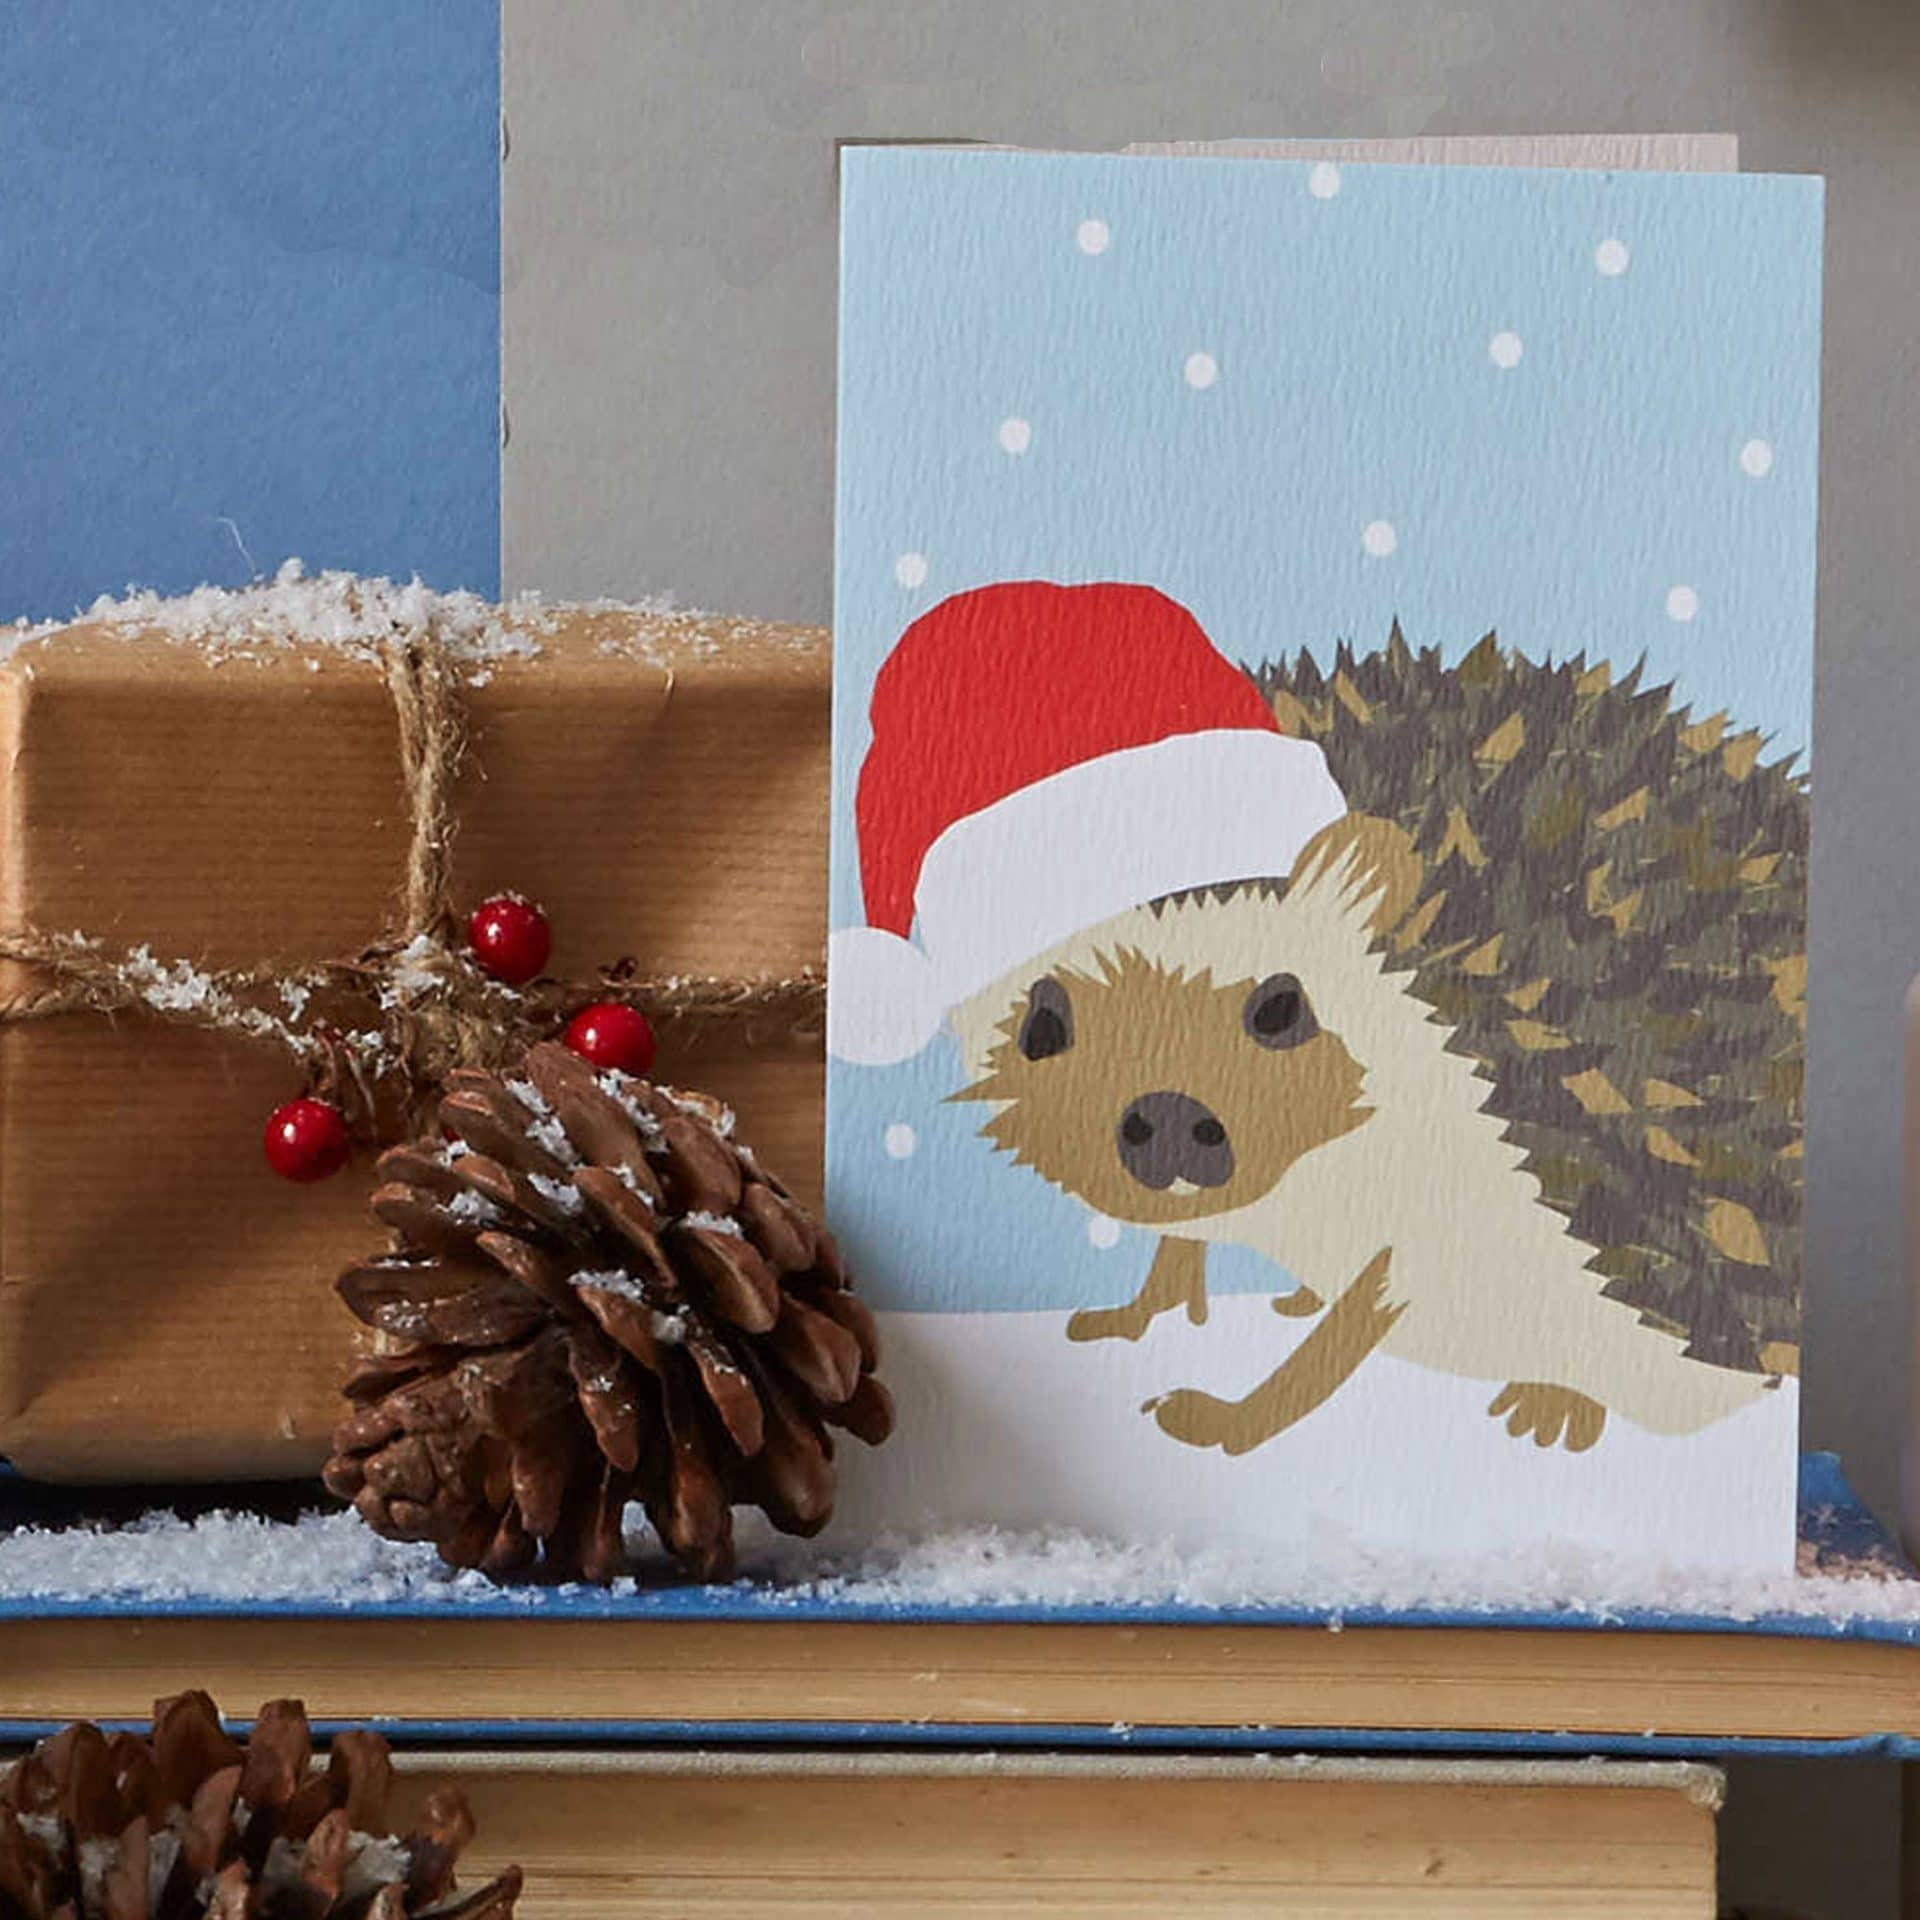 Christmas Card Luxury Designer Personalised Message Sustainable Environmentally Friendly FSC Paper Plastic Free - Christmas hedgehog designed by Lorna Syson